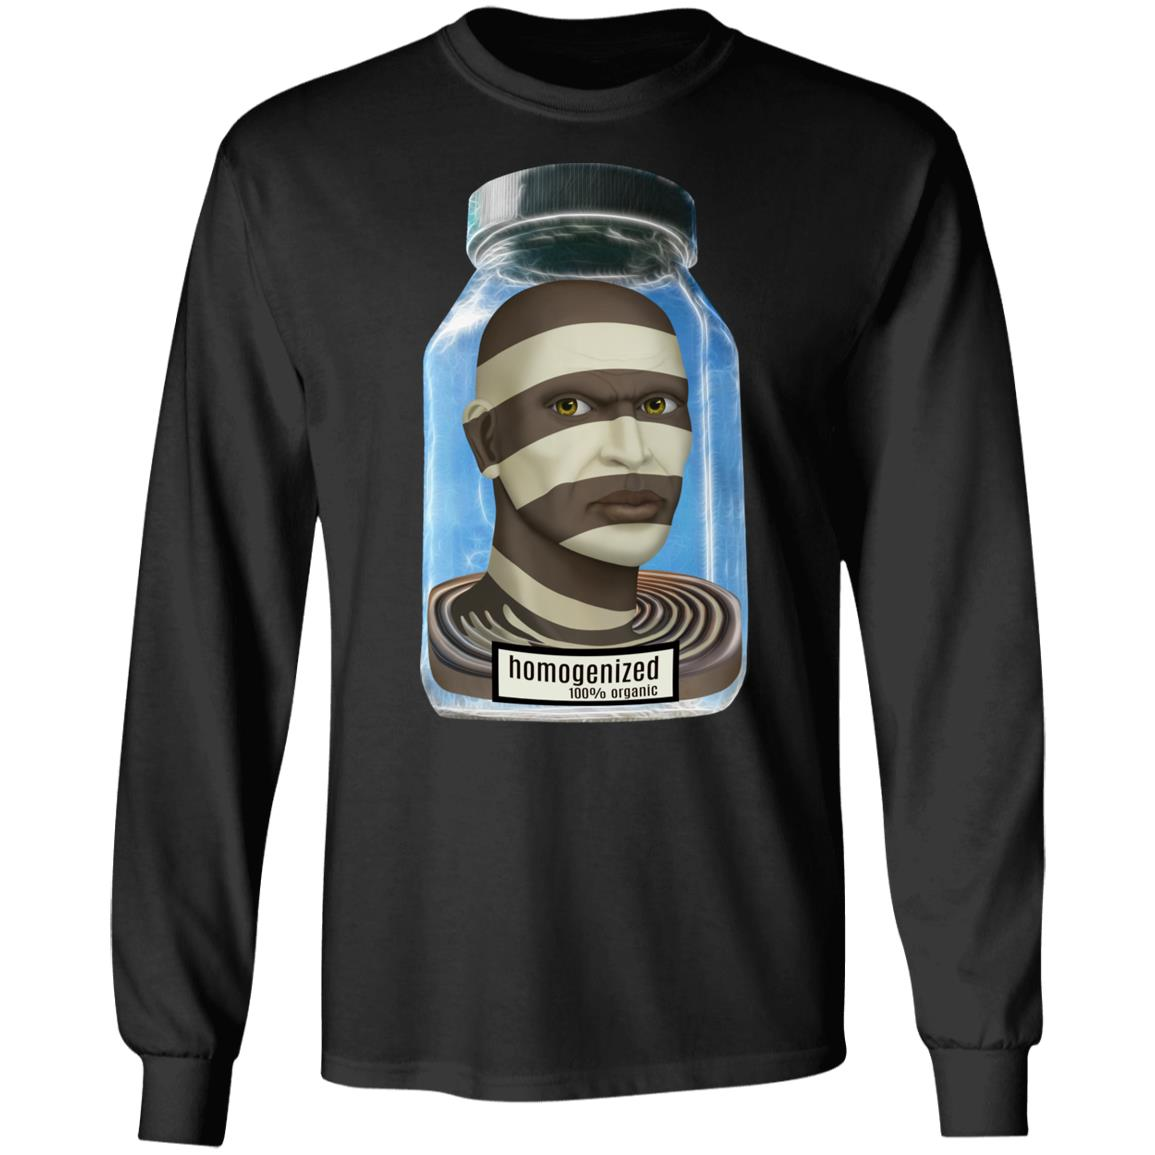 Homogenized - Men's Long Sleeve T-Shirt